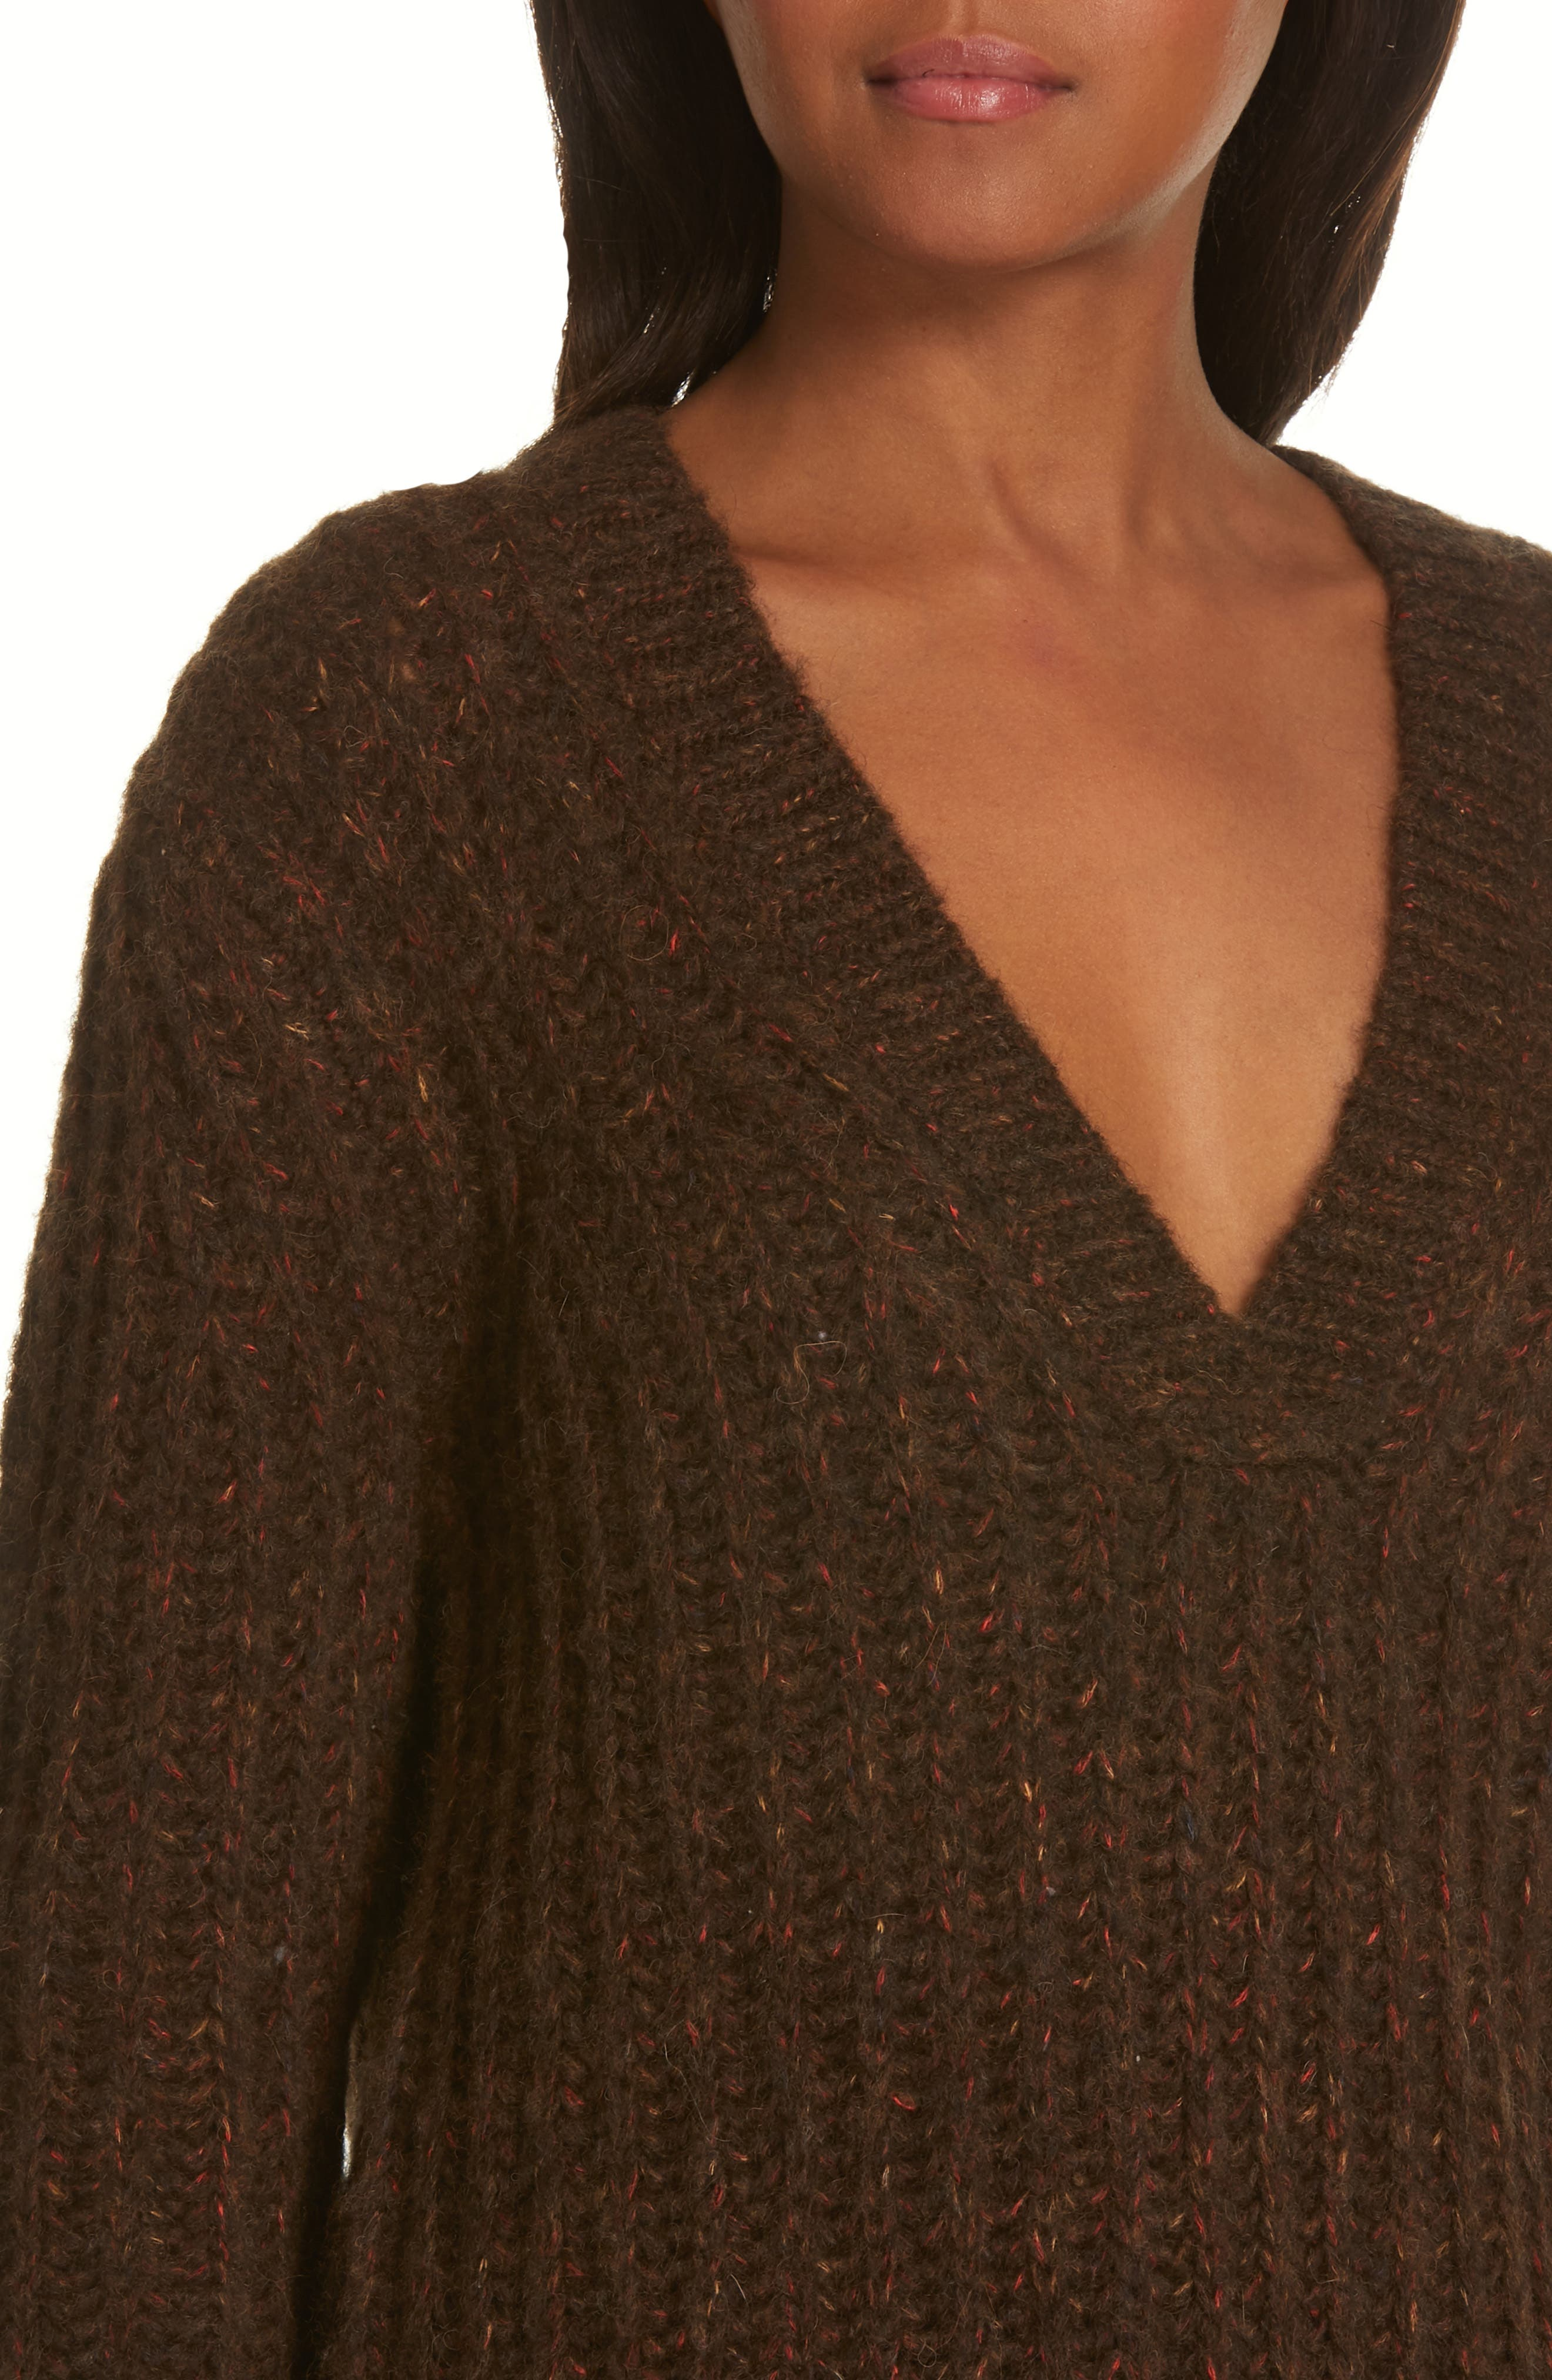 Oversize V-Neck Sweater,                             Alternate thumbnail 4, color,                             BROWN / RED